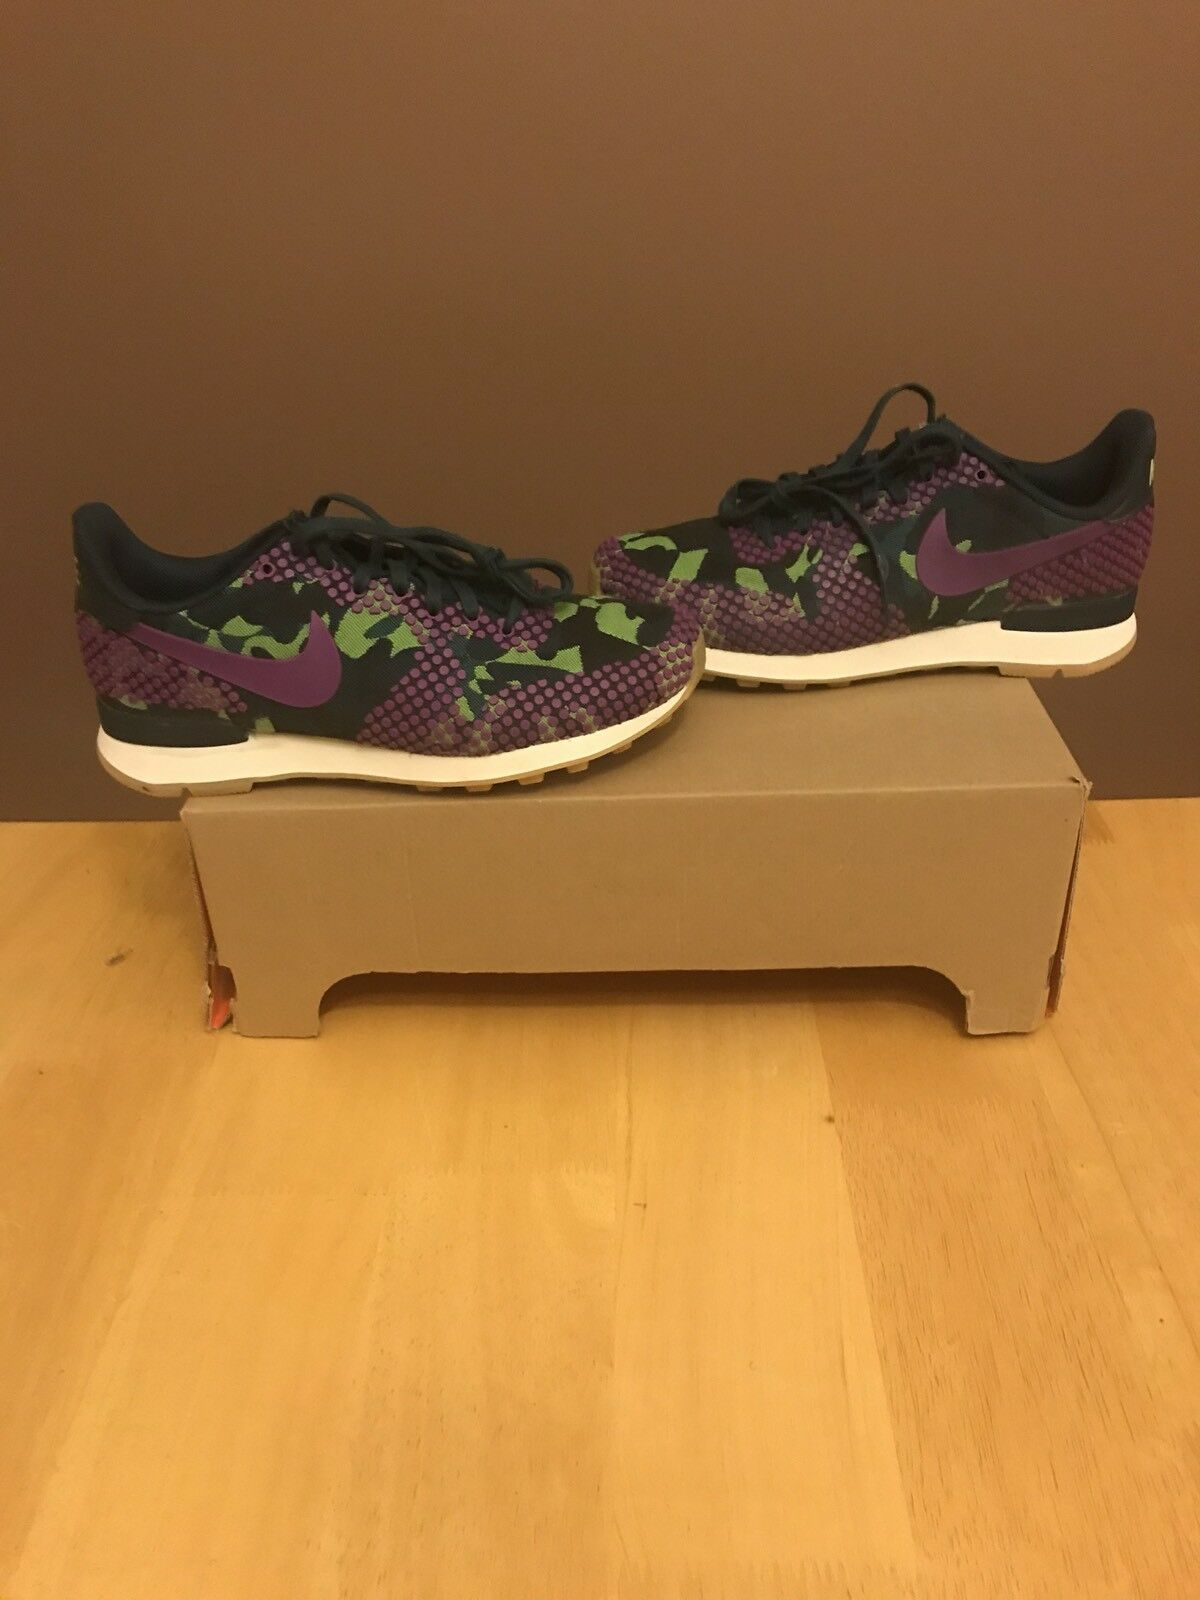 Nike Women's Internationalist Jacquard Prem Trainer Size 7 120 Max Fly Presto